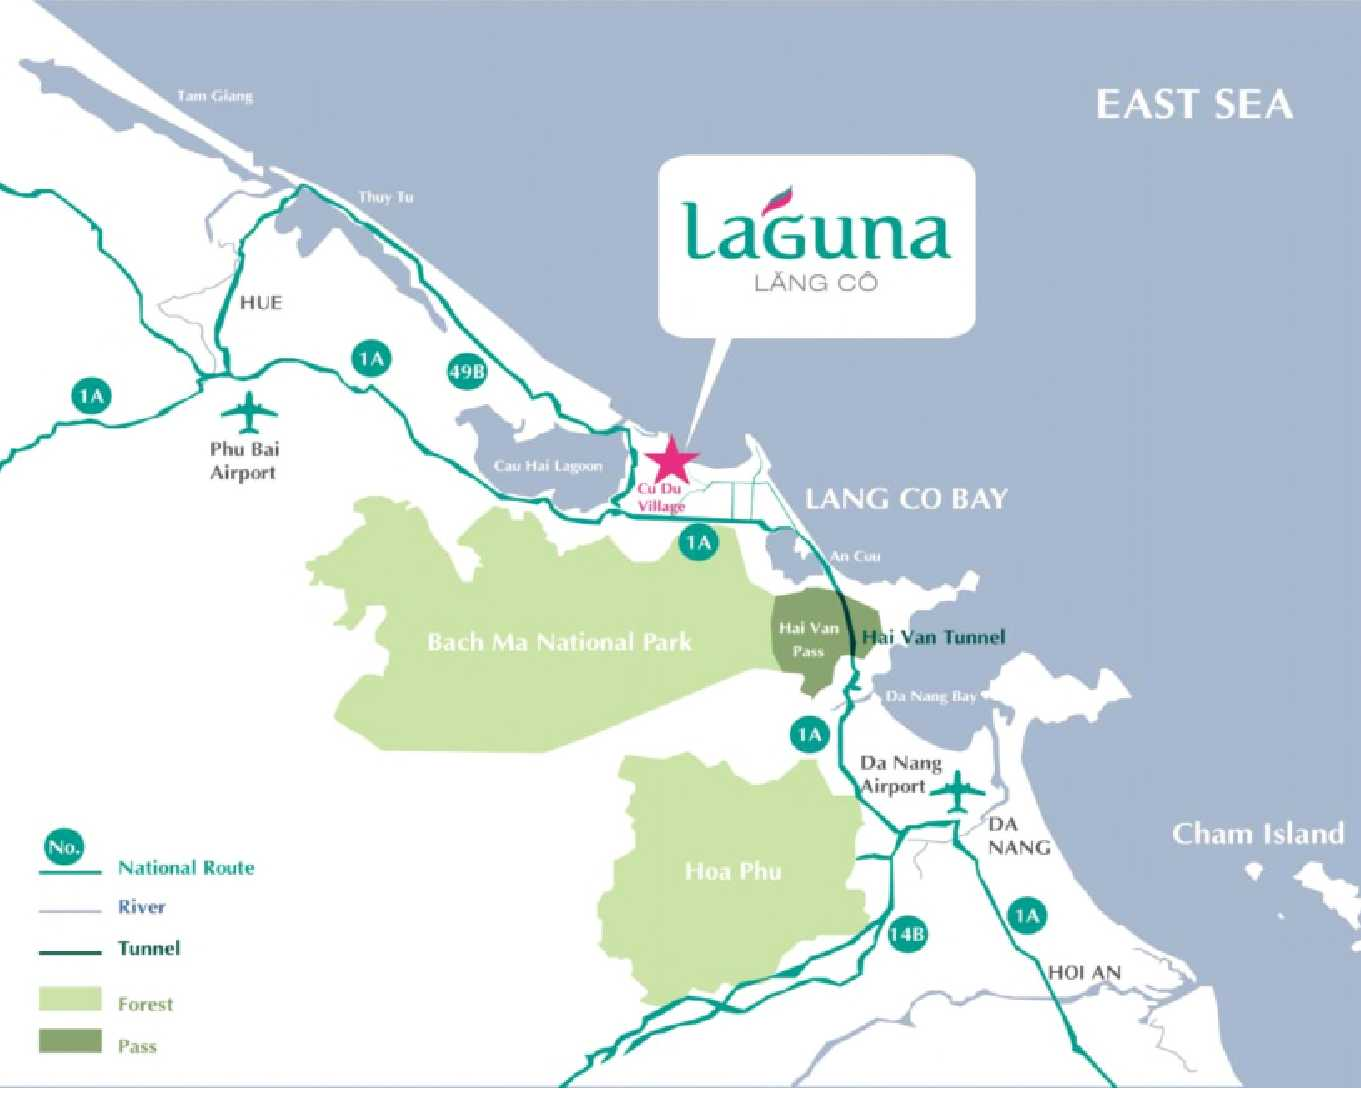 Laguna Lang Co - Location & Accessibility